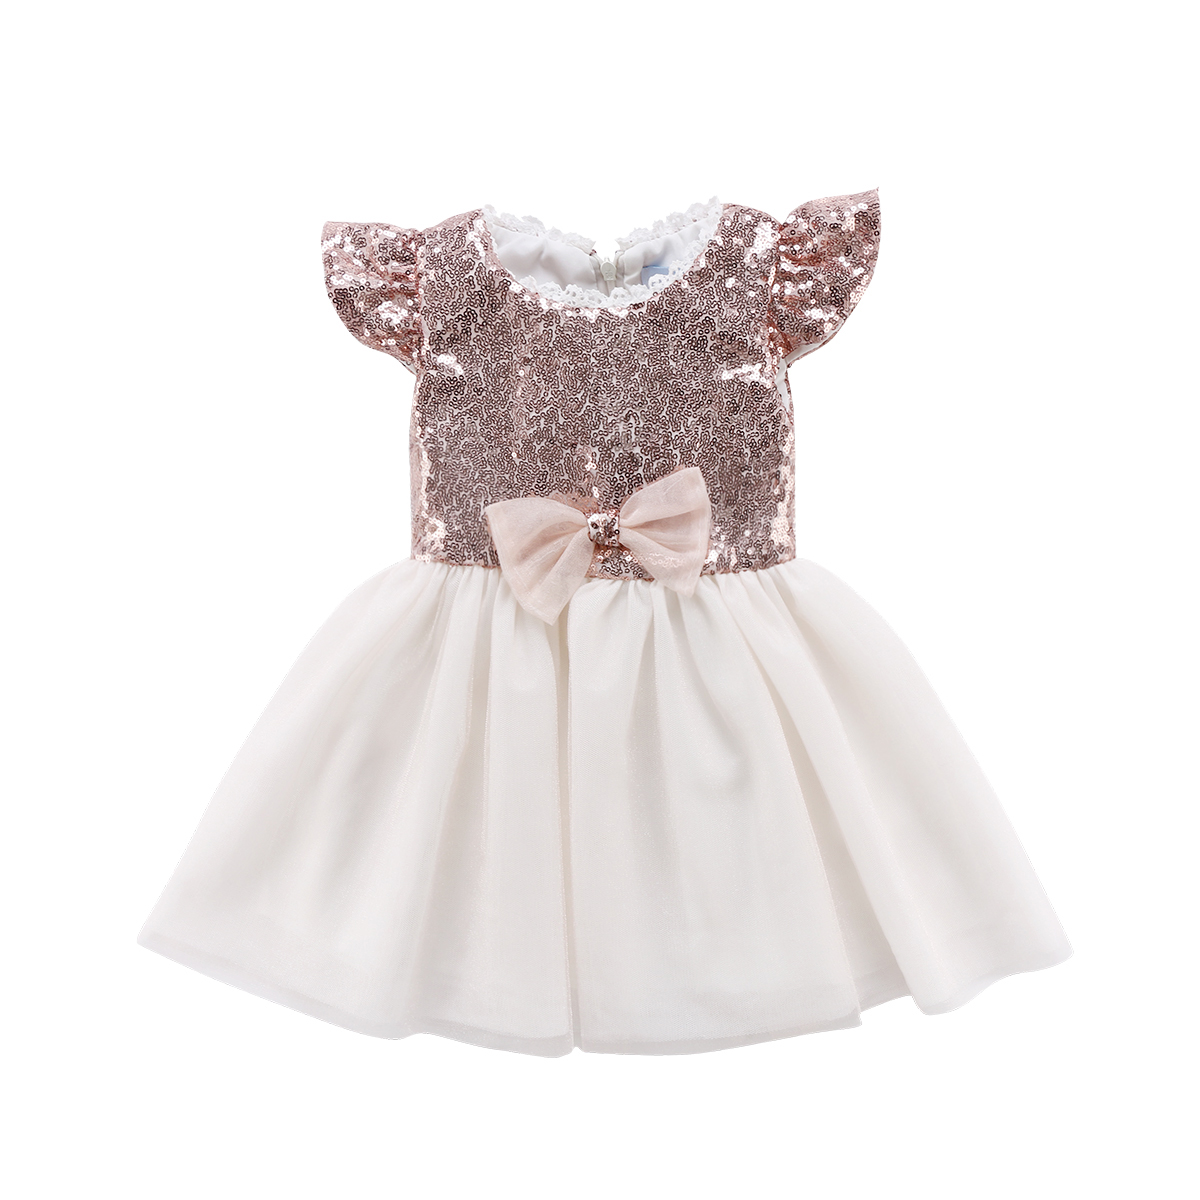 Fashion Summer Toddler Baby Girls Clothes Princess Party Dress Cute Sundress